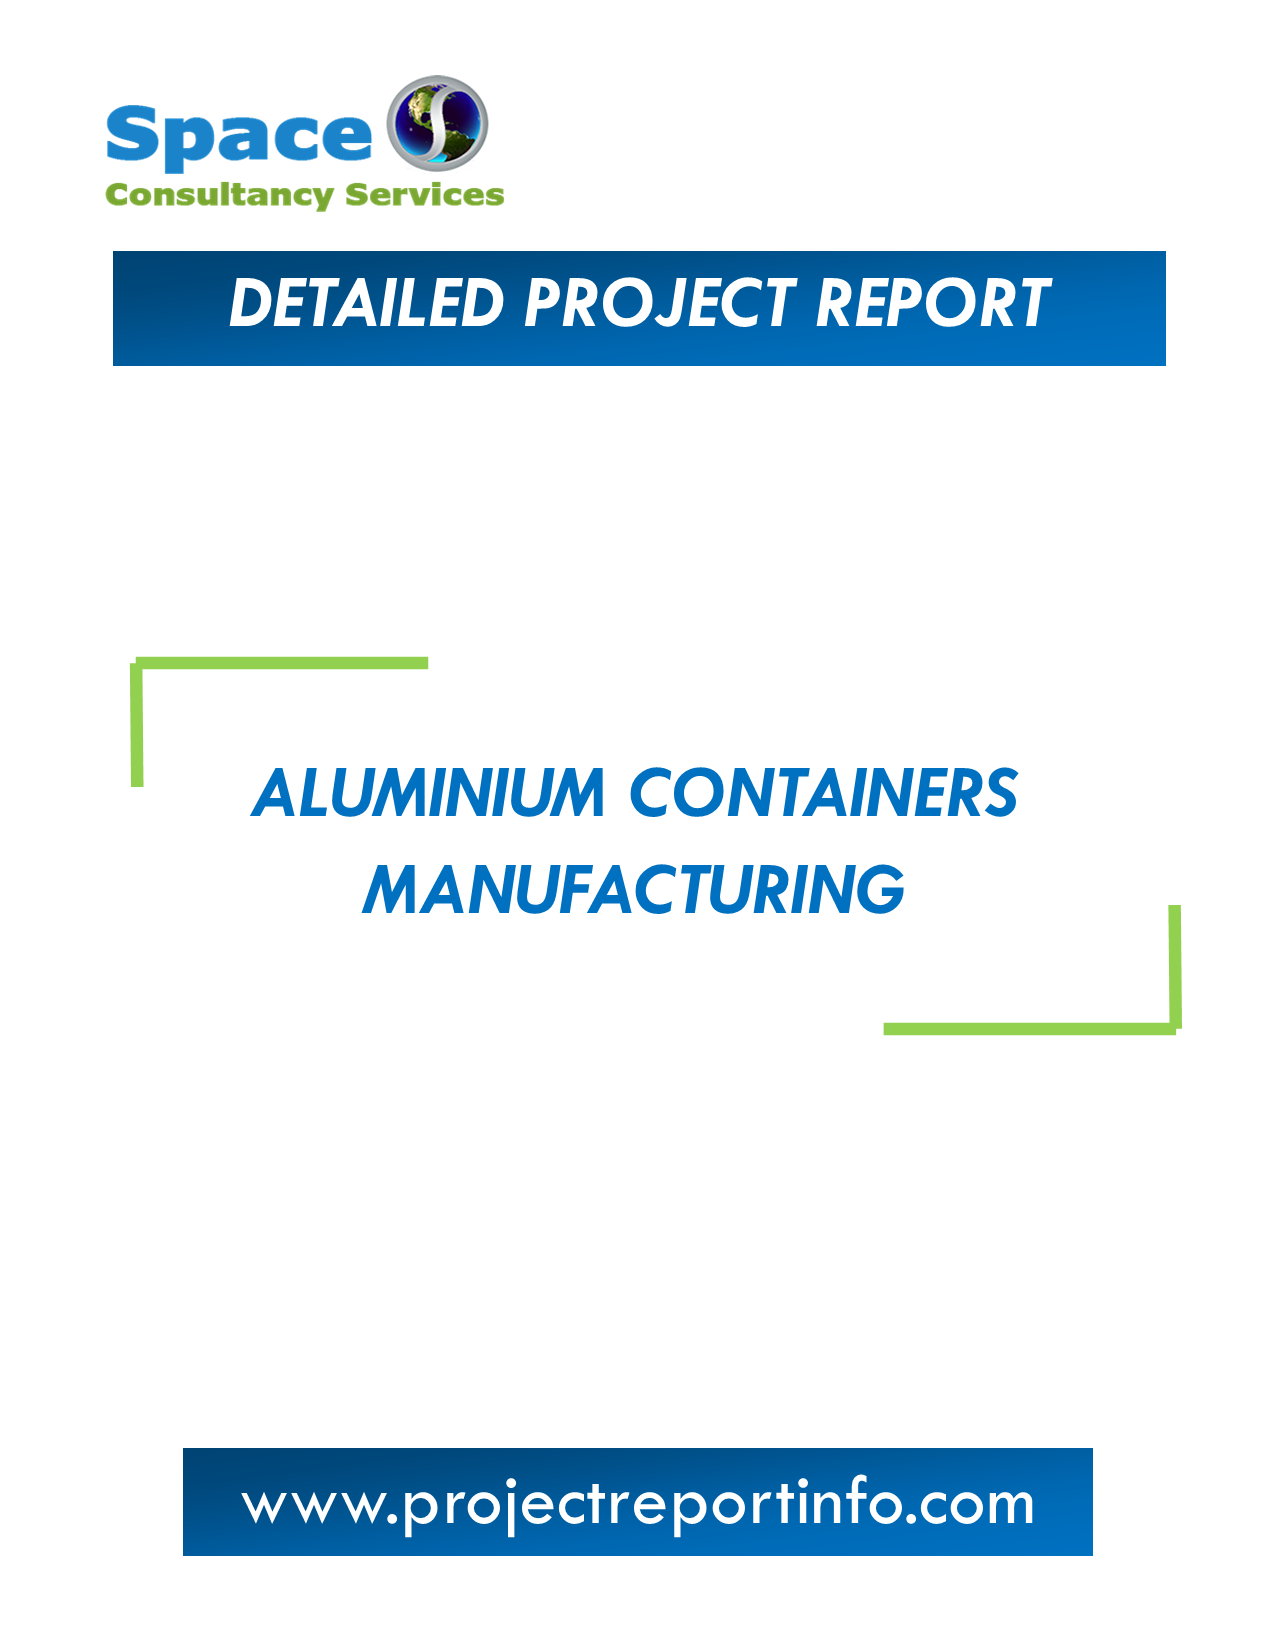 Project Report on Aluminium Containers Manufacturing